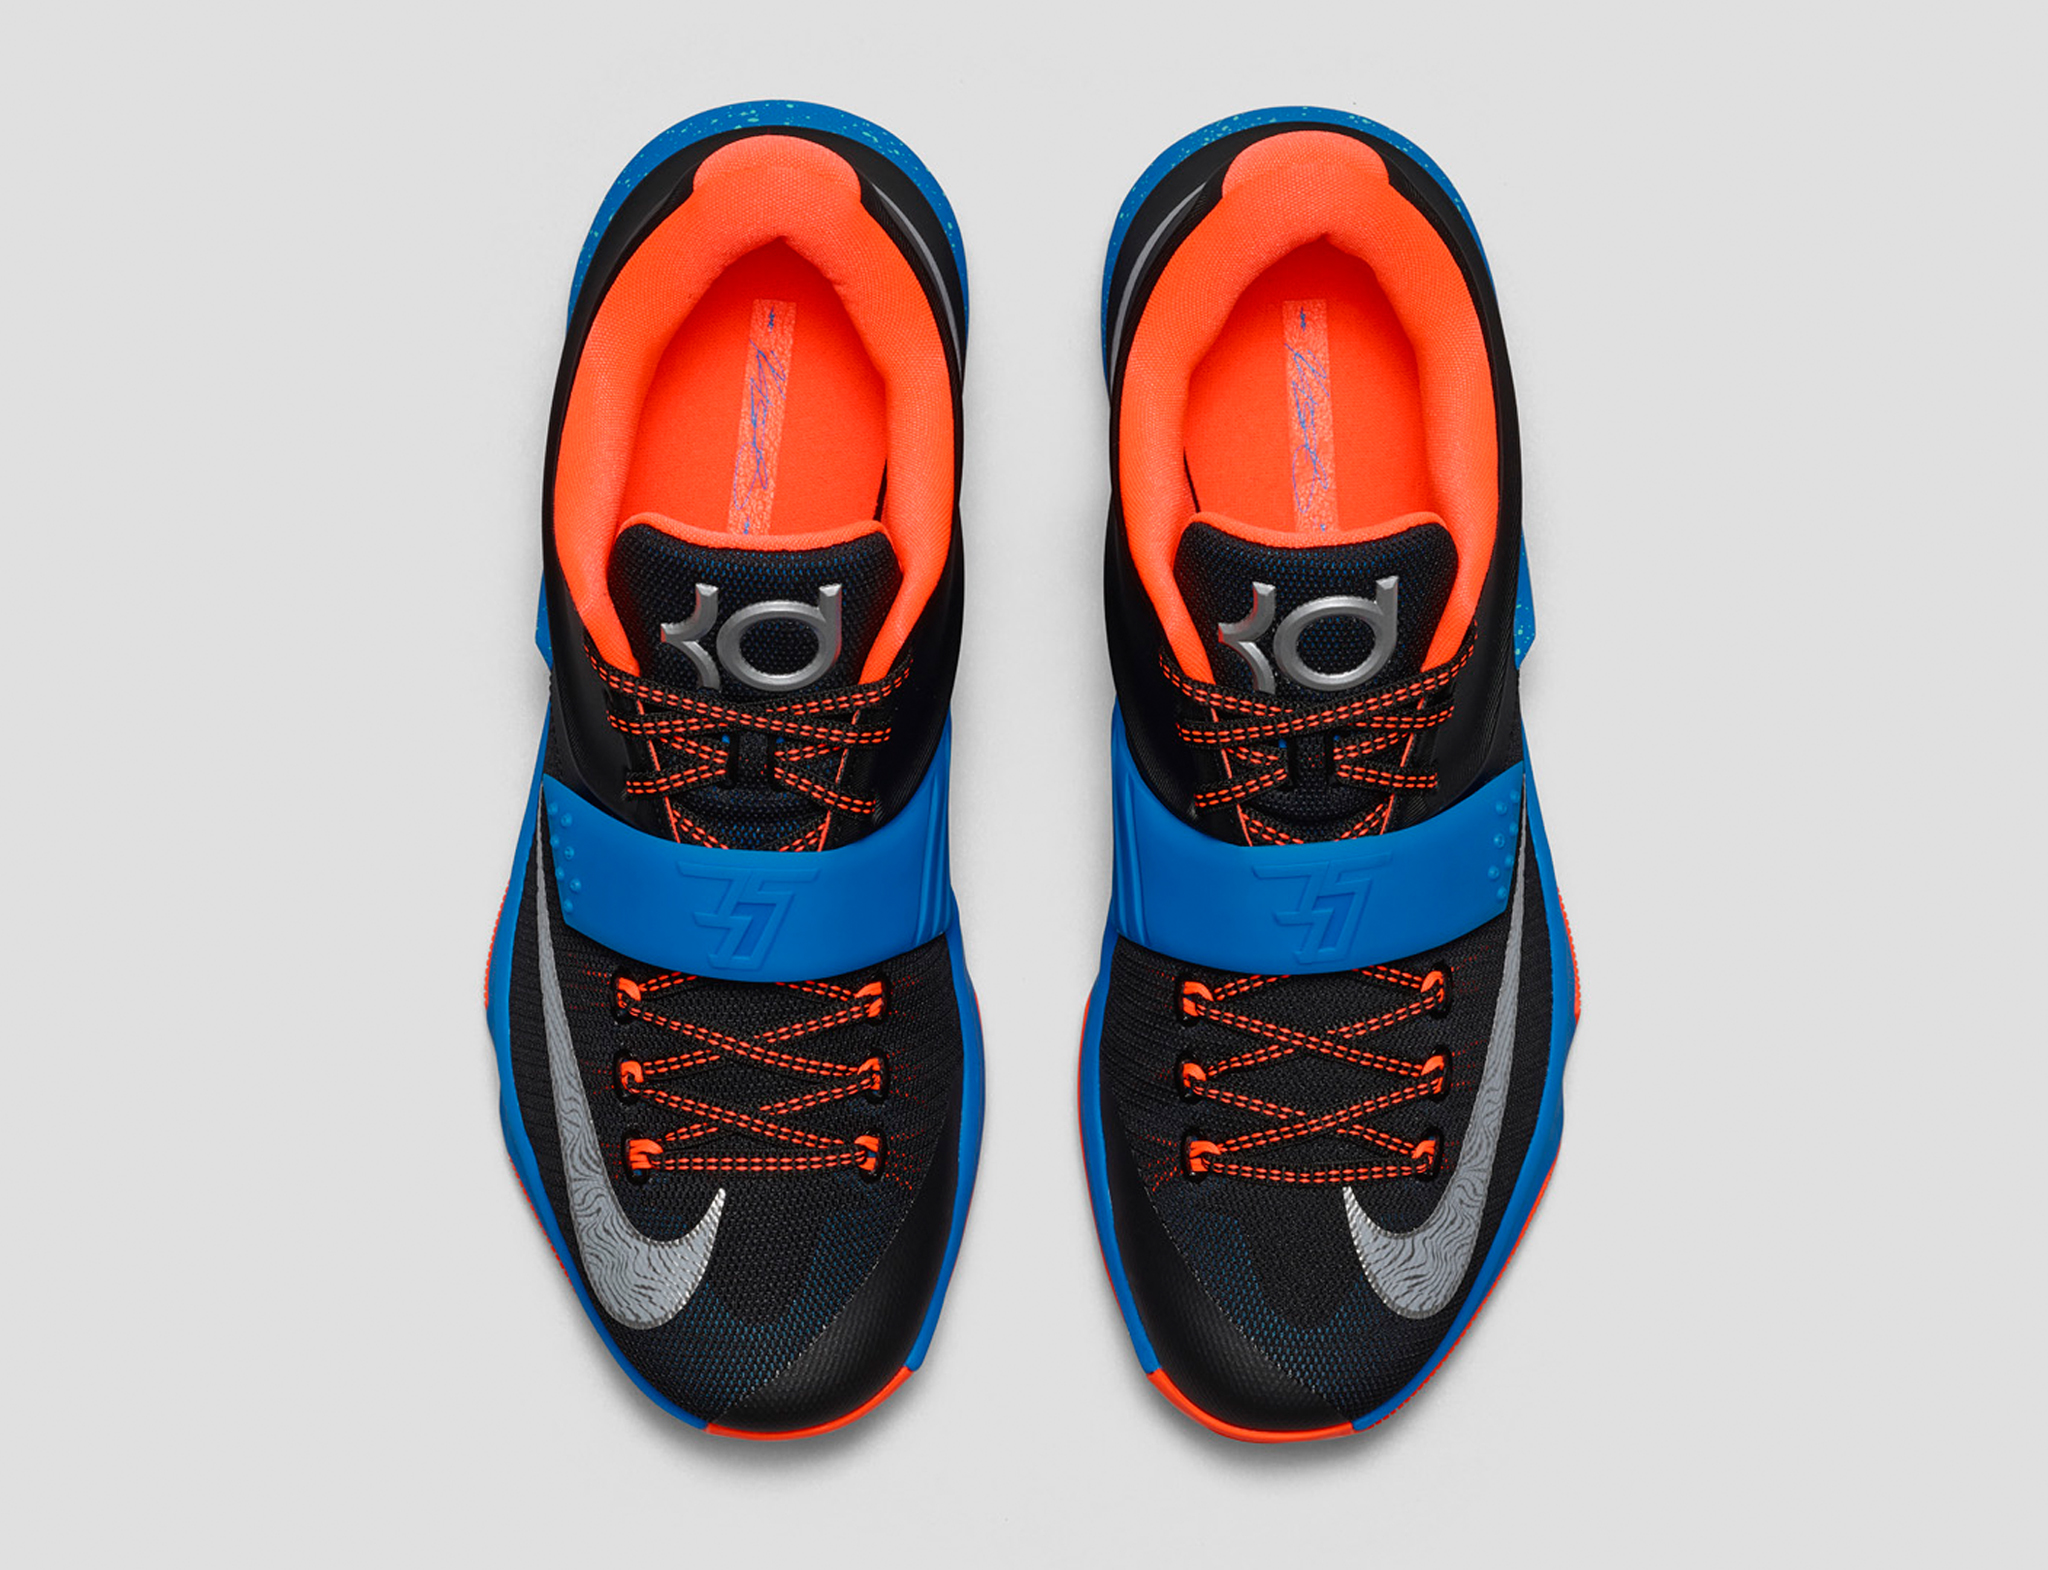 ca3b1a10a268 where to buy customize nike purple black green kd 8 basketball shoes for  cheap sale 625e2 90a87  where can i buy kd xdr philippines 3fe7f 20209